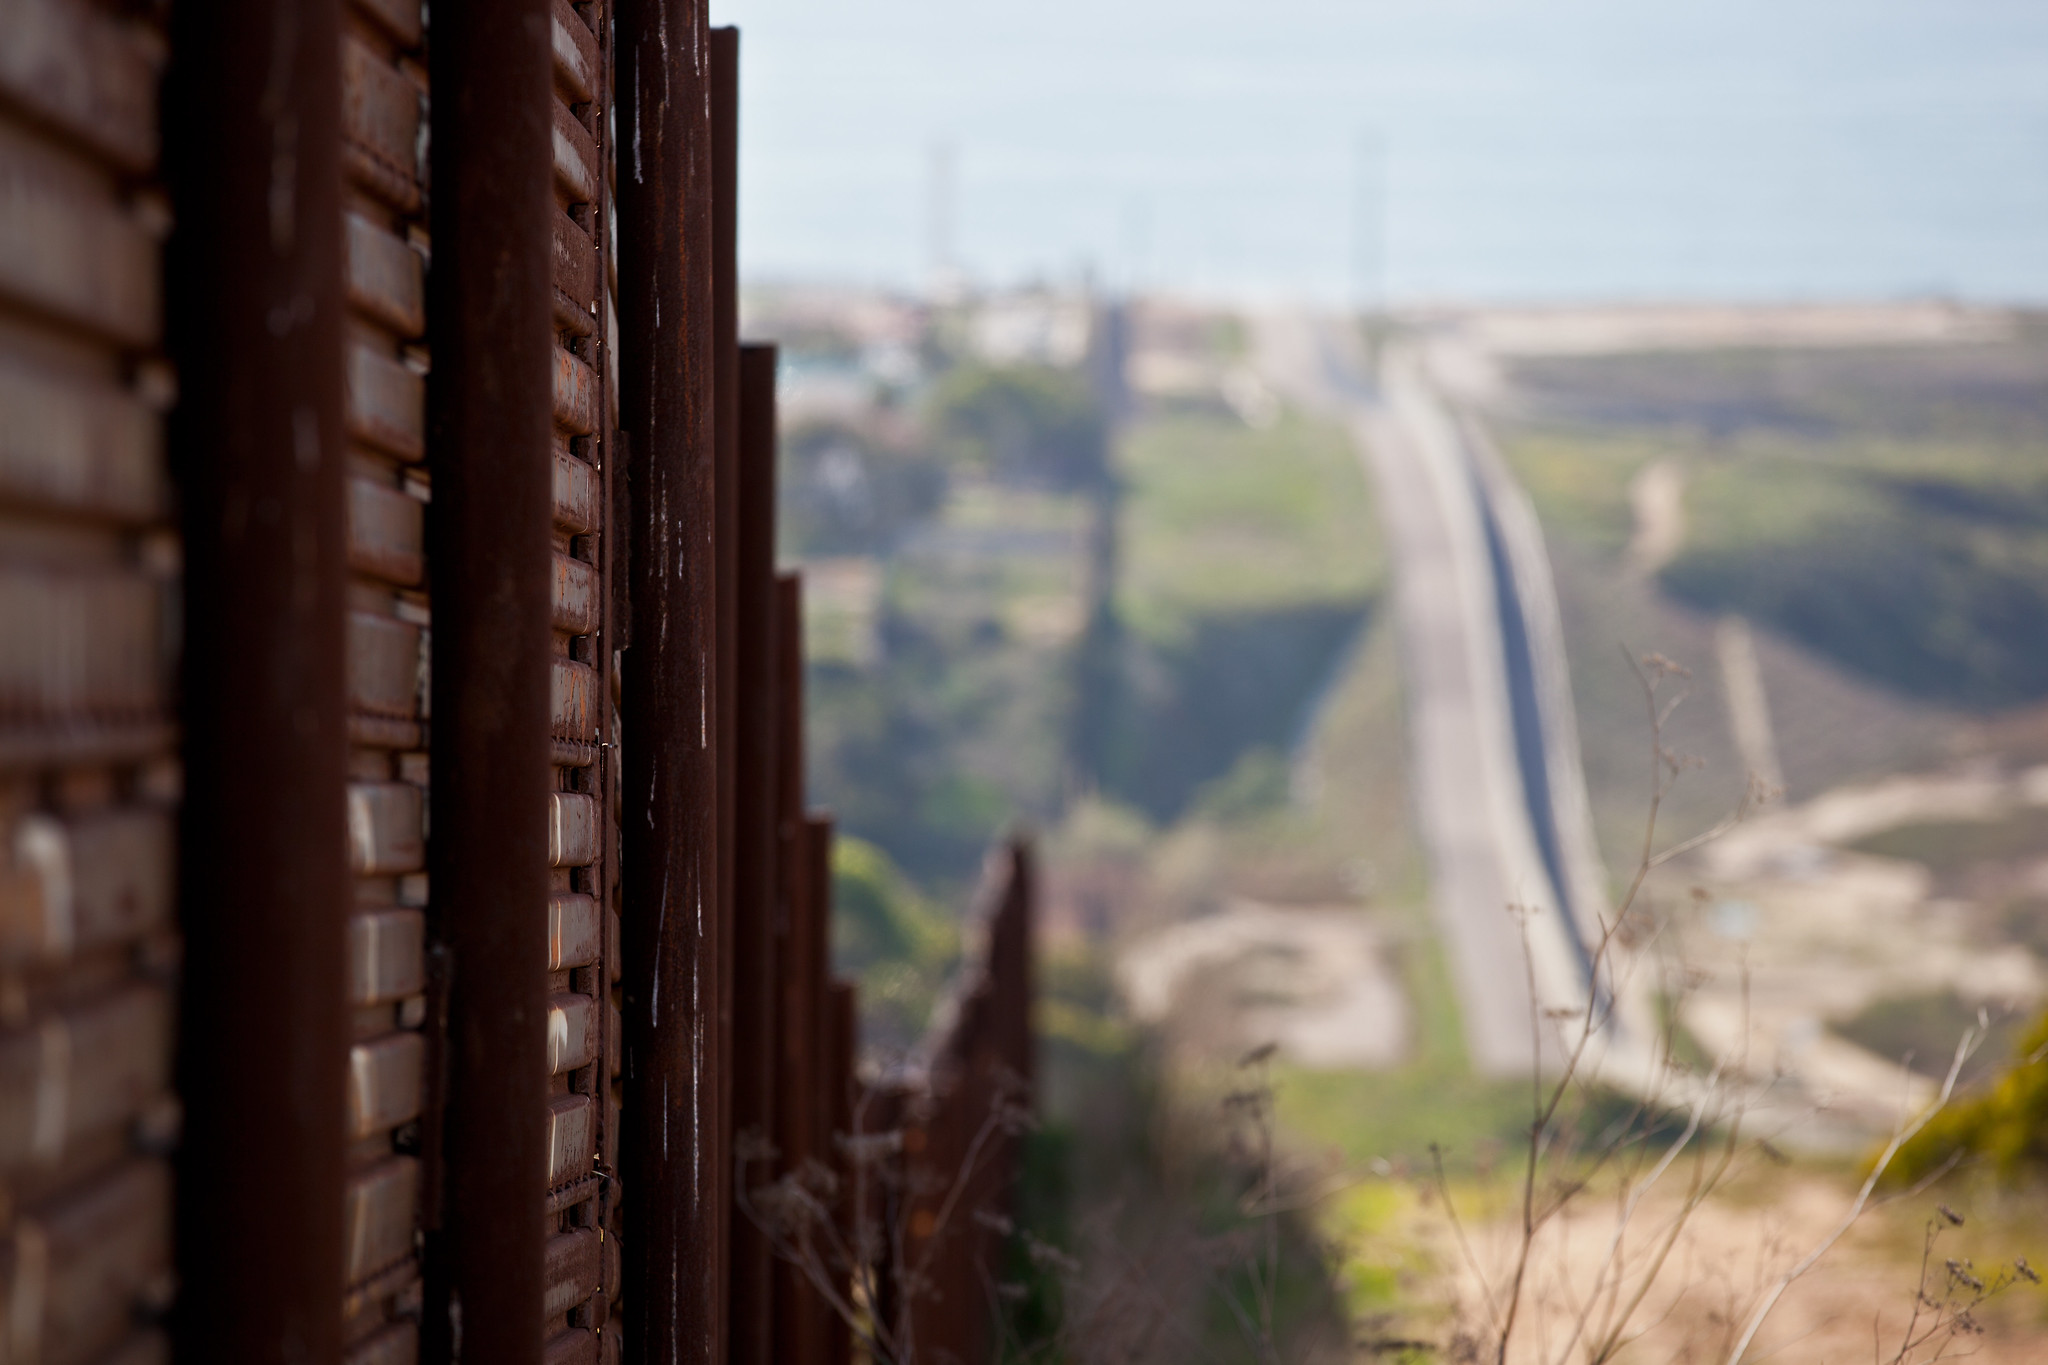 A close-up view of the fence along the U.S. border